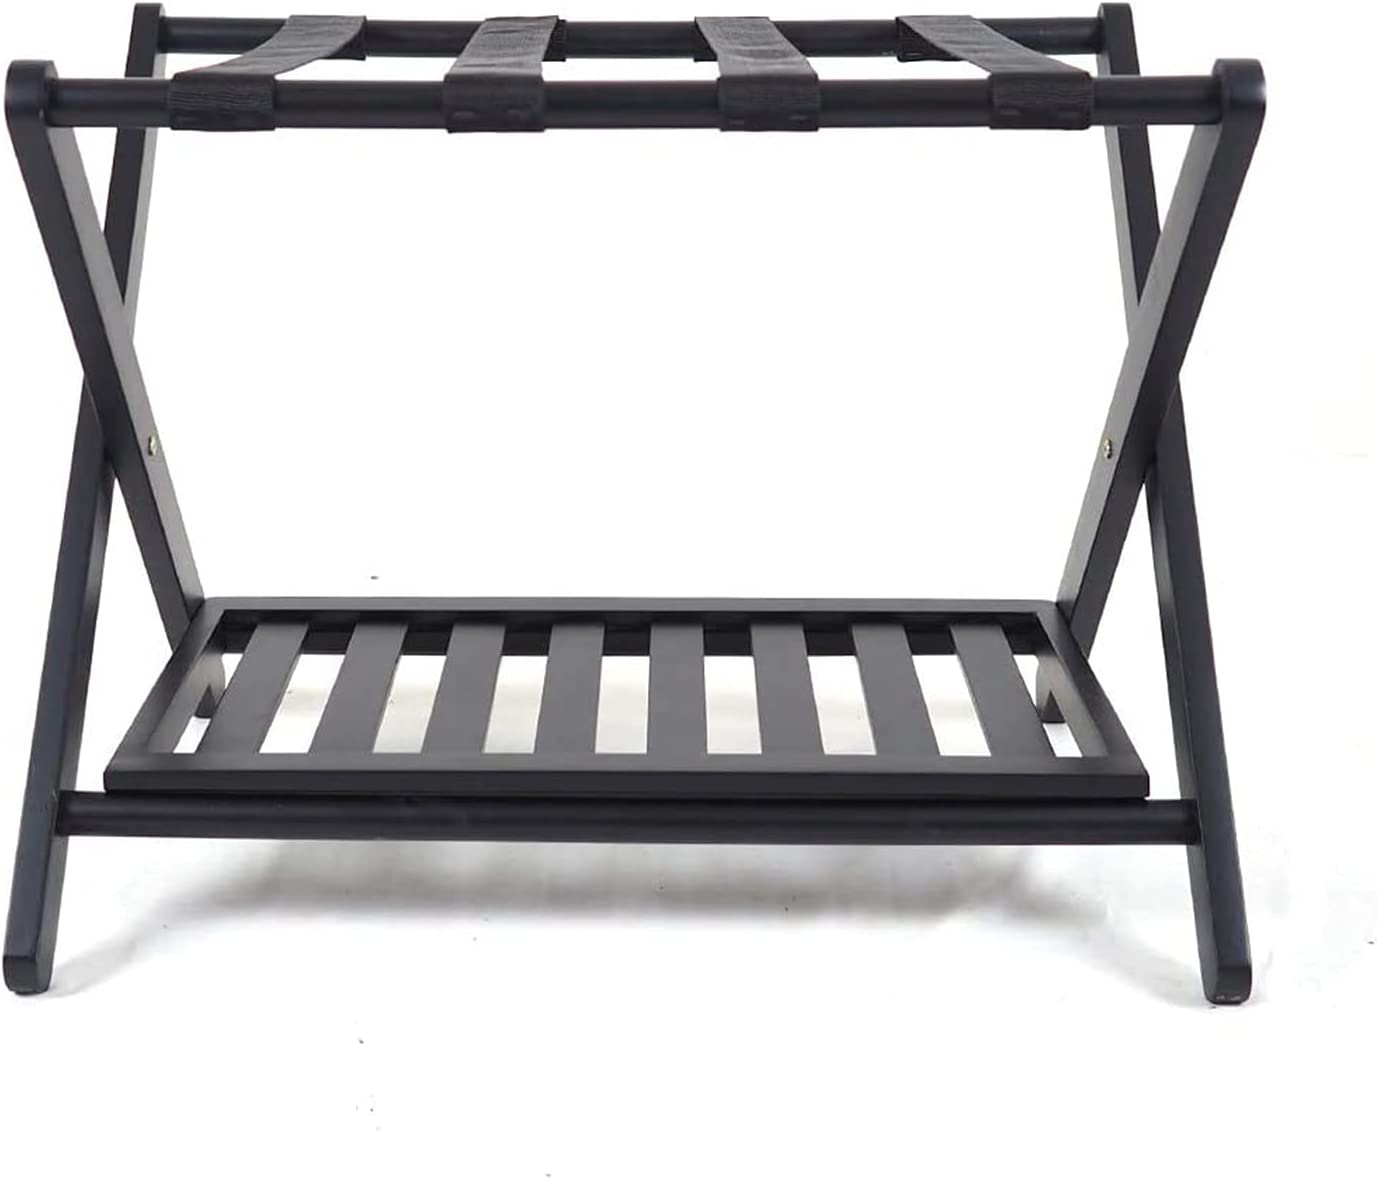 ZXFF Outlet SALE Wooden Folding Trust Luggage Rack with Holder Webbi Nylon